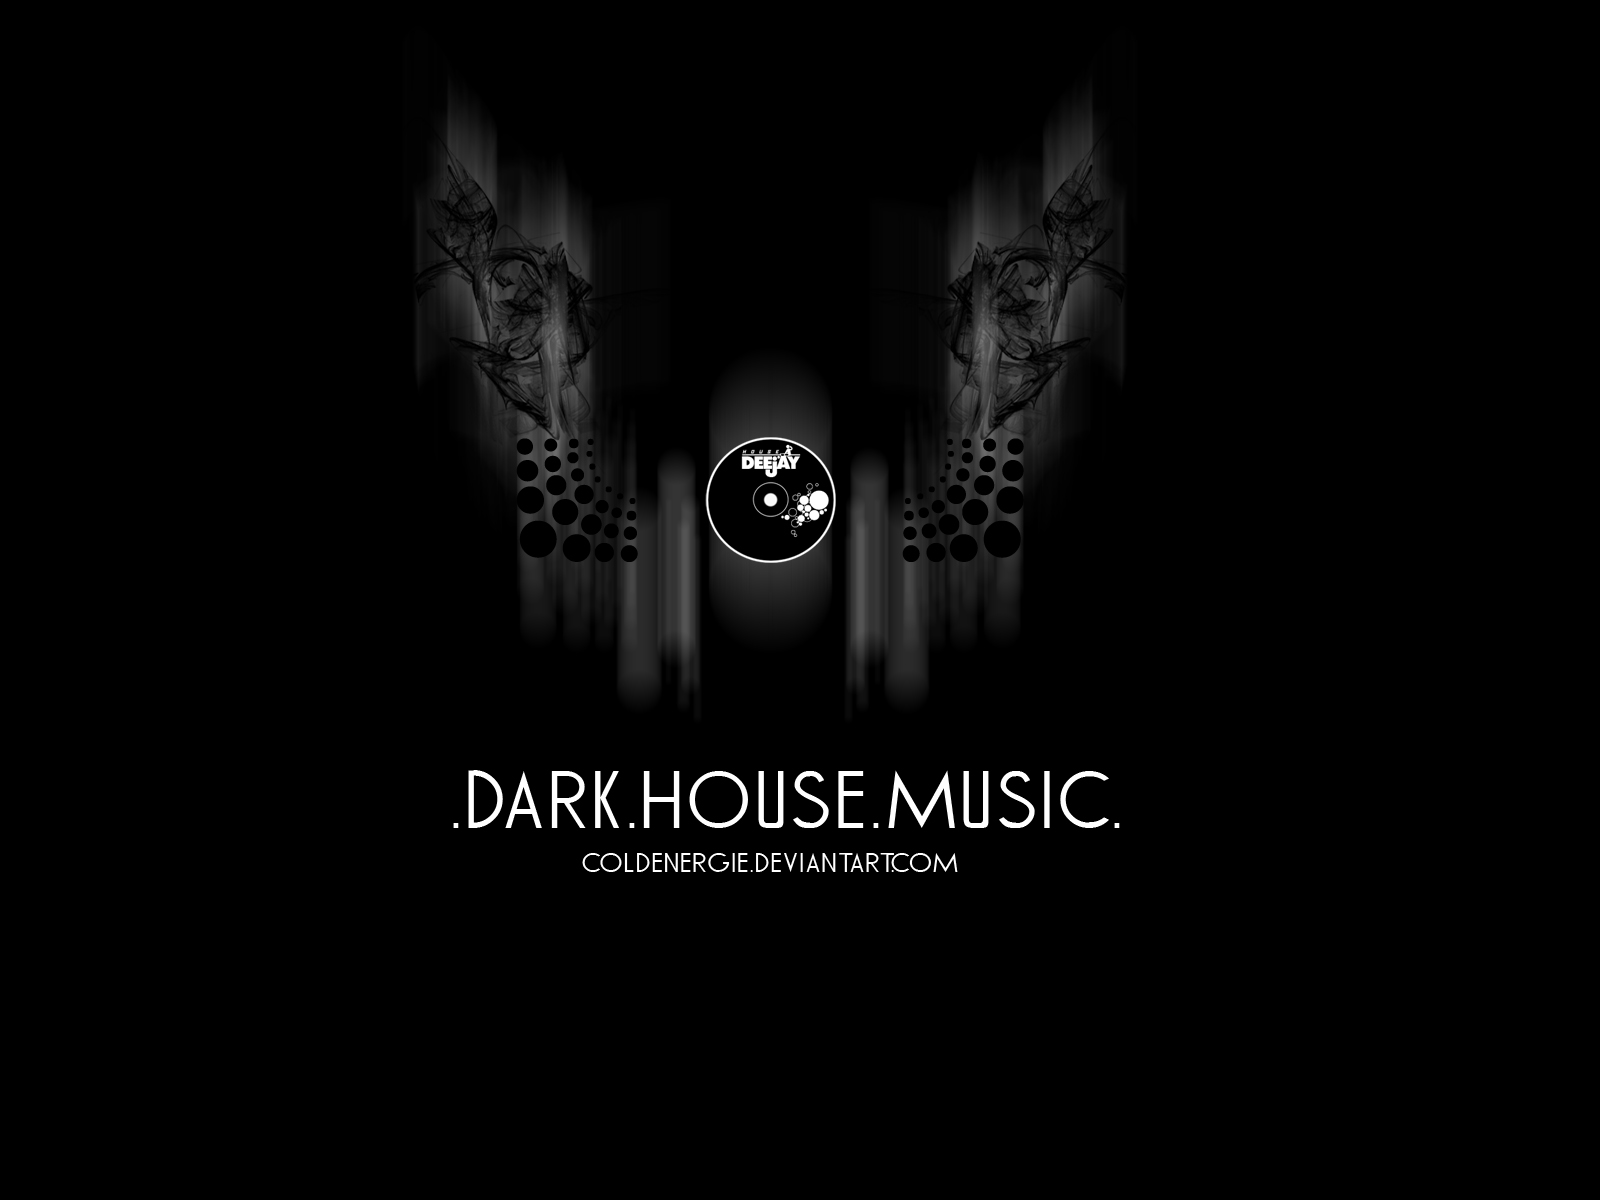 dark house music black label by coldenergie on deviantart